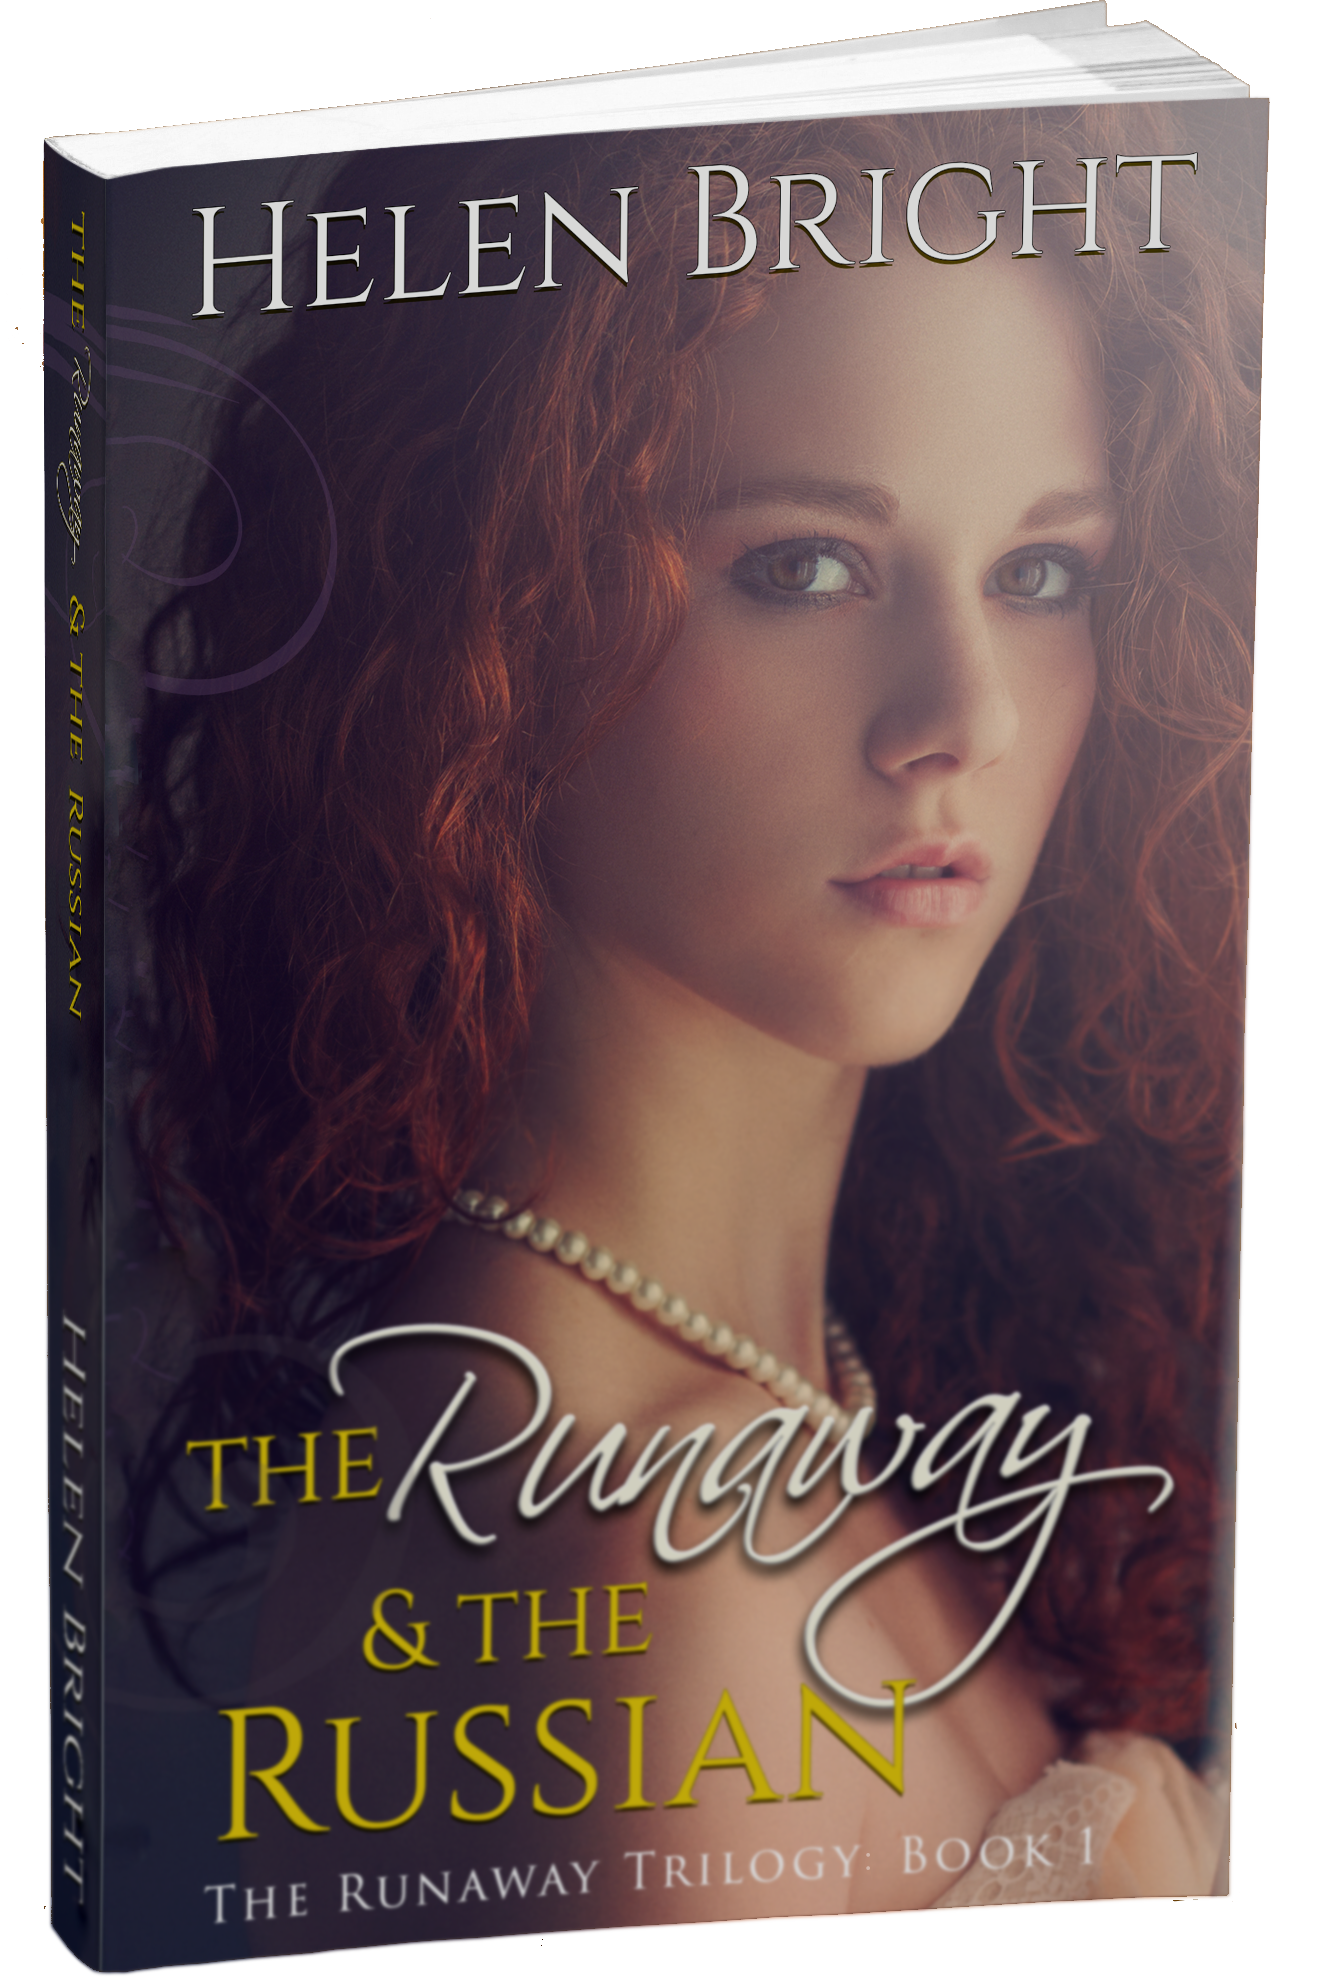 the runaway and the Russian 3d paperback mockup